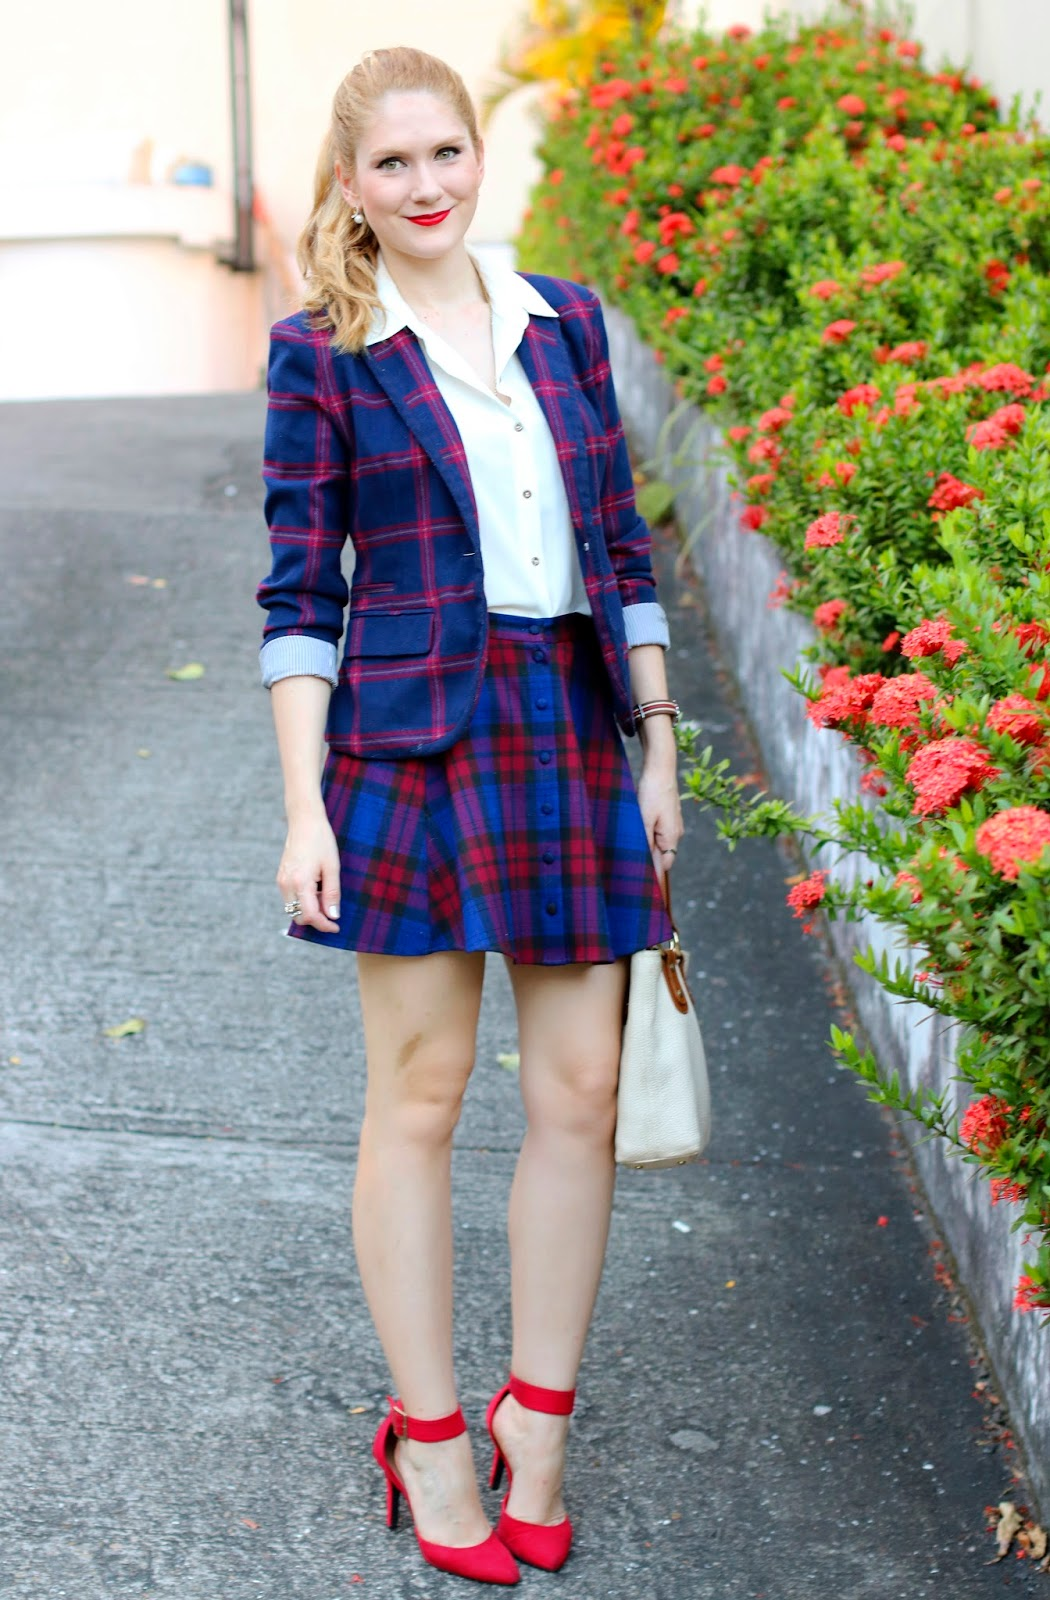 Cute plaid outfit for the holidays!